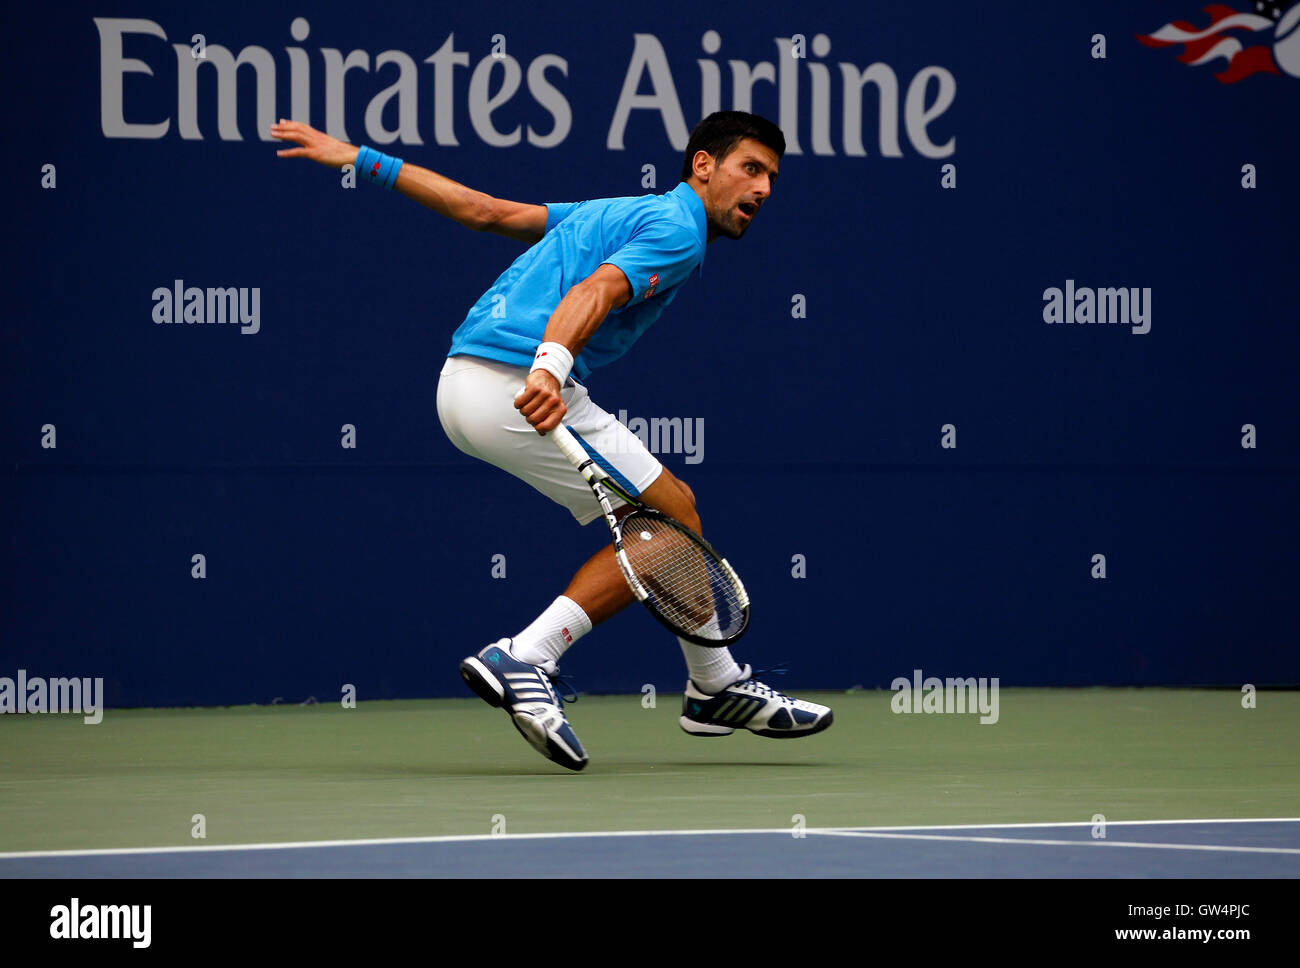 New York, United States. 11th Sep, 2016. Novak Djokovic follows a backhand return during the United States Open - Stock Image